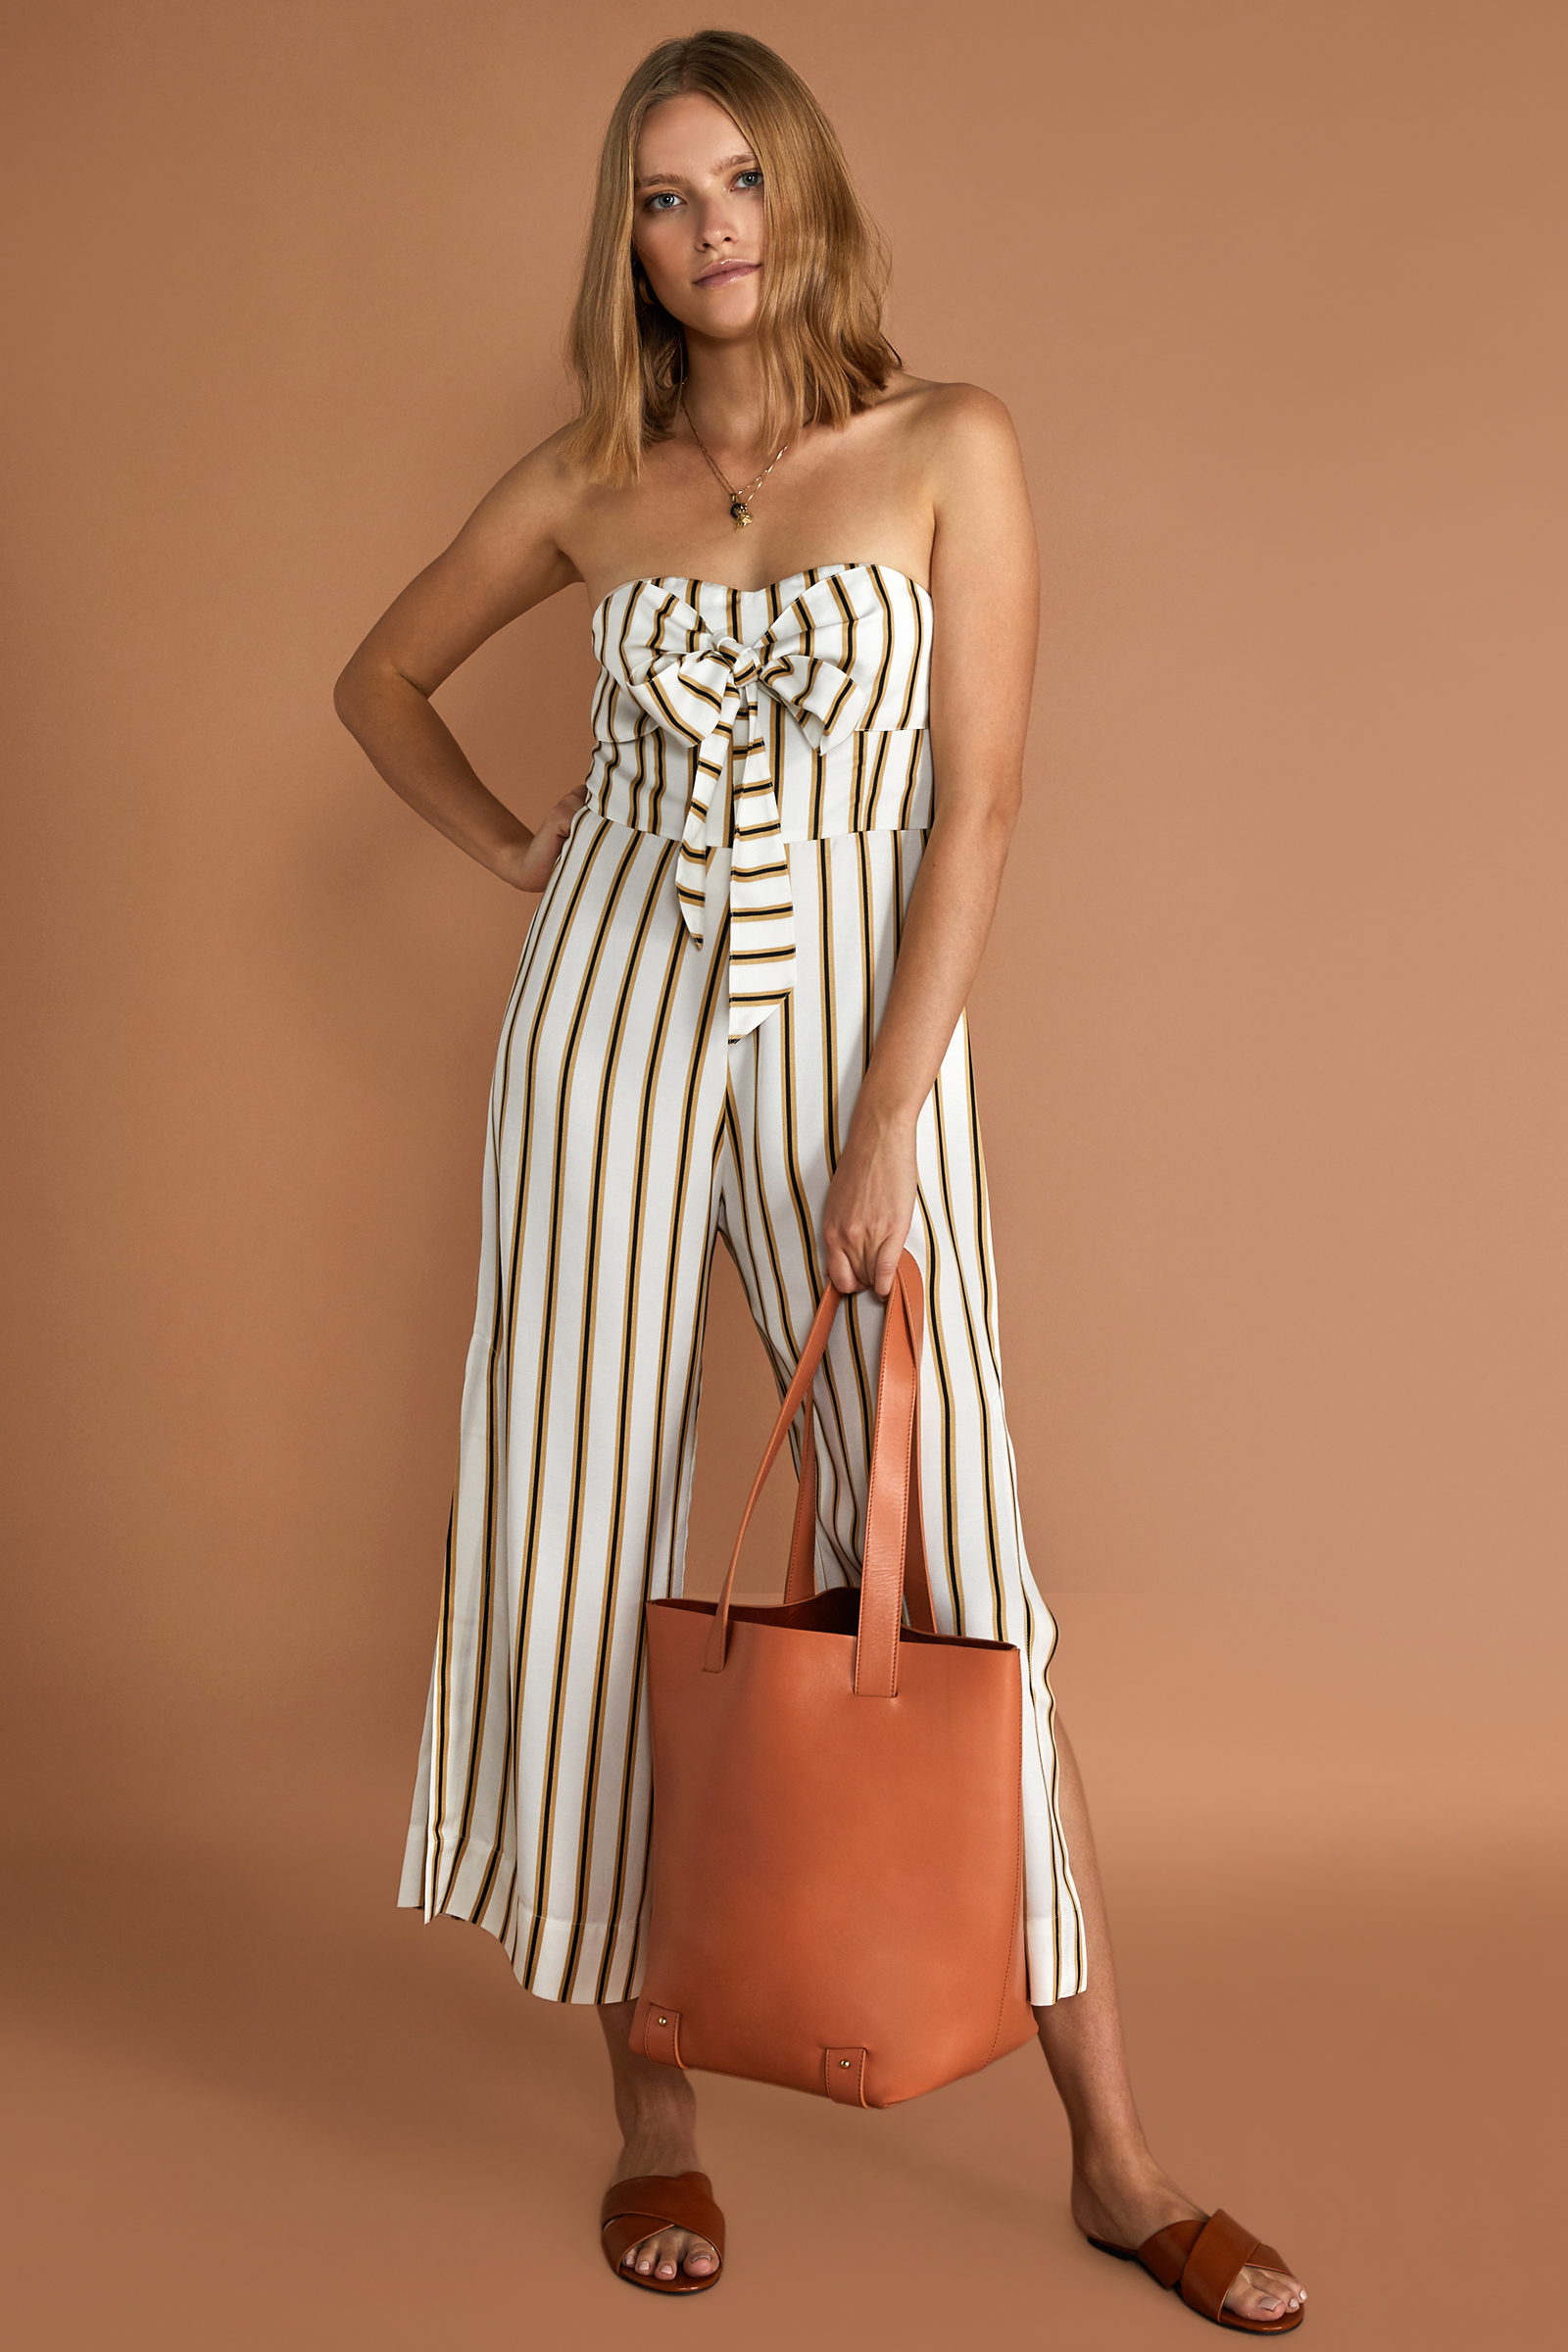 873192d9107 ... SANCIA Praia Jumpsuit – Cilou Stripe. 707 PRAIA JUMPSUIT CILOU  STRIPE BAG